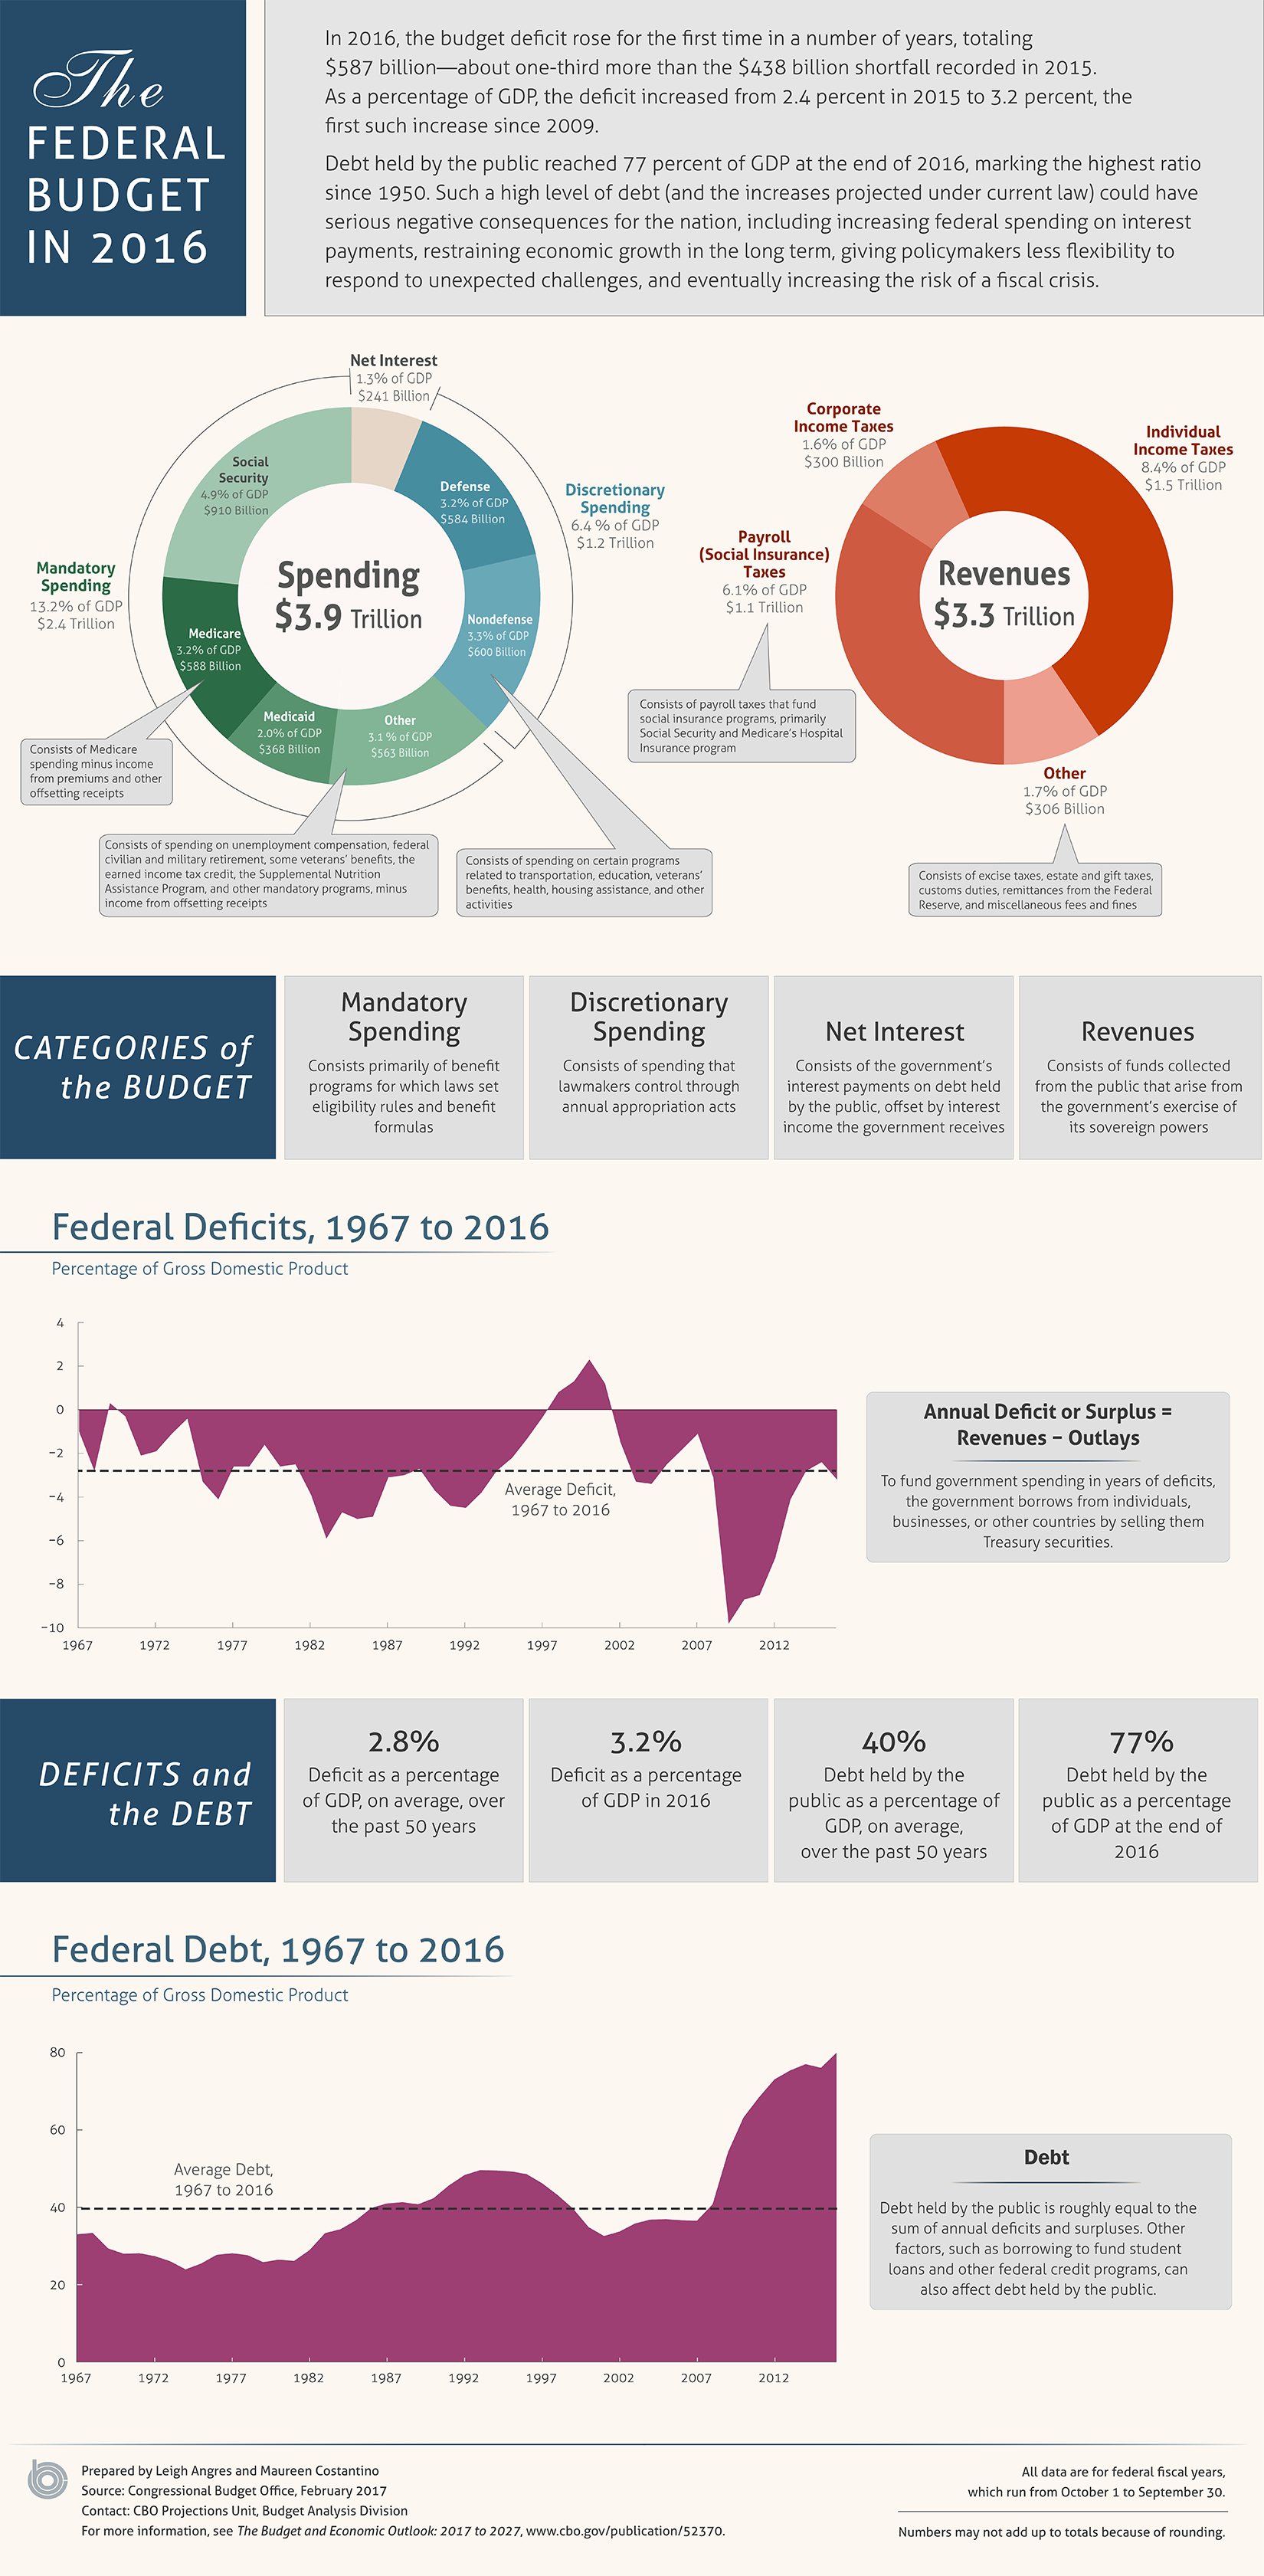 the federal budget in 2016 an infographic congressional budget office. Black Bedroom Furniture Sets. Home Design Ideas